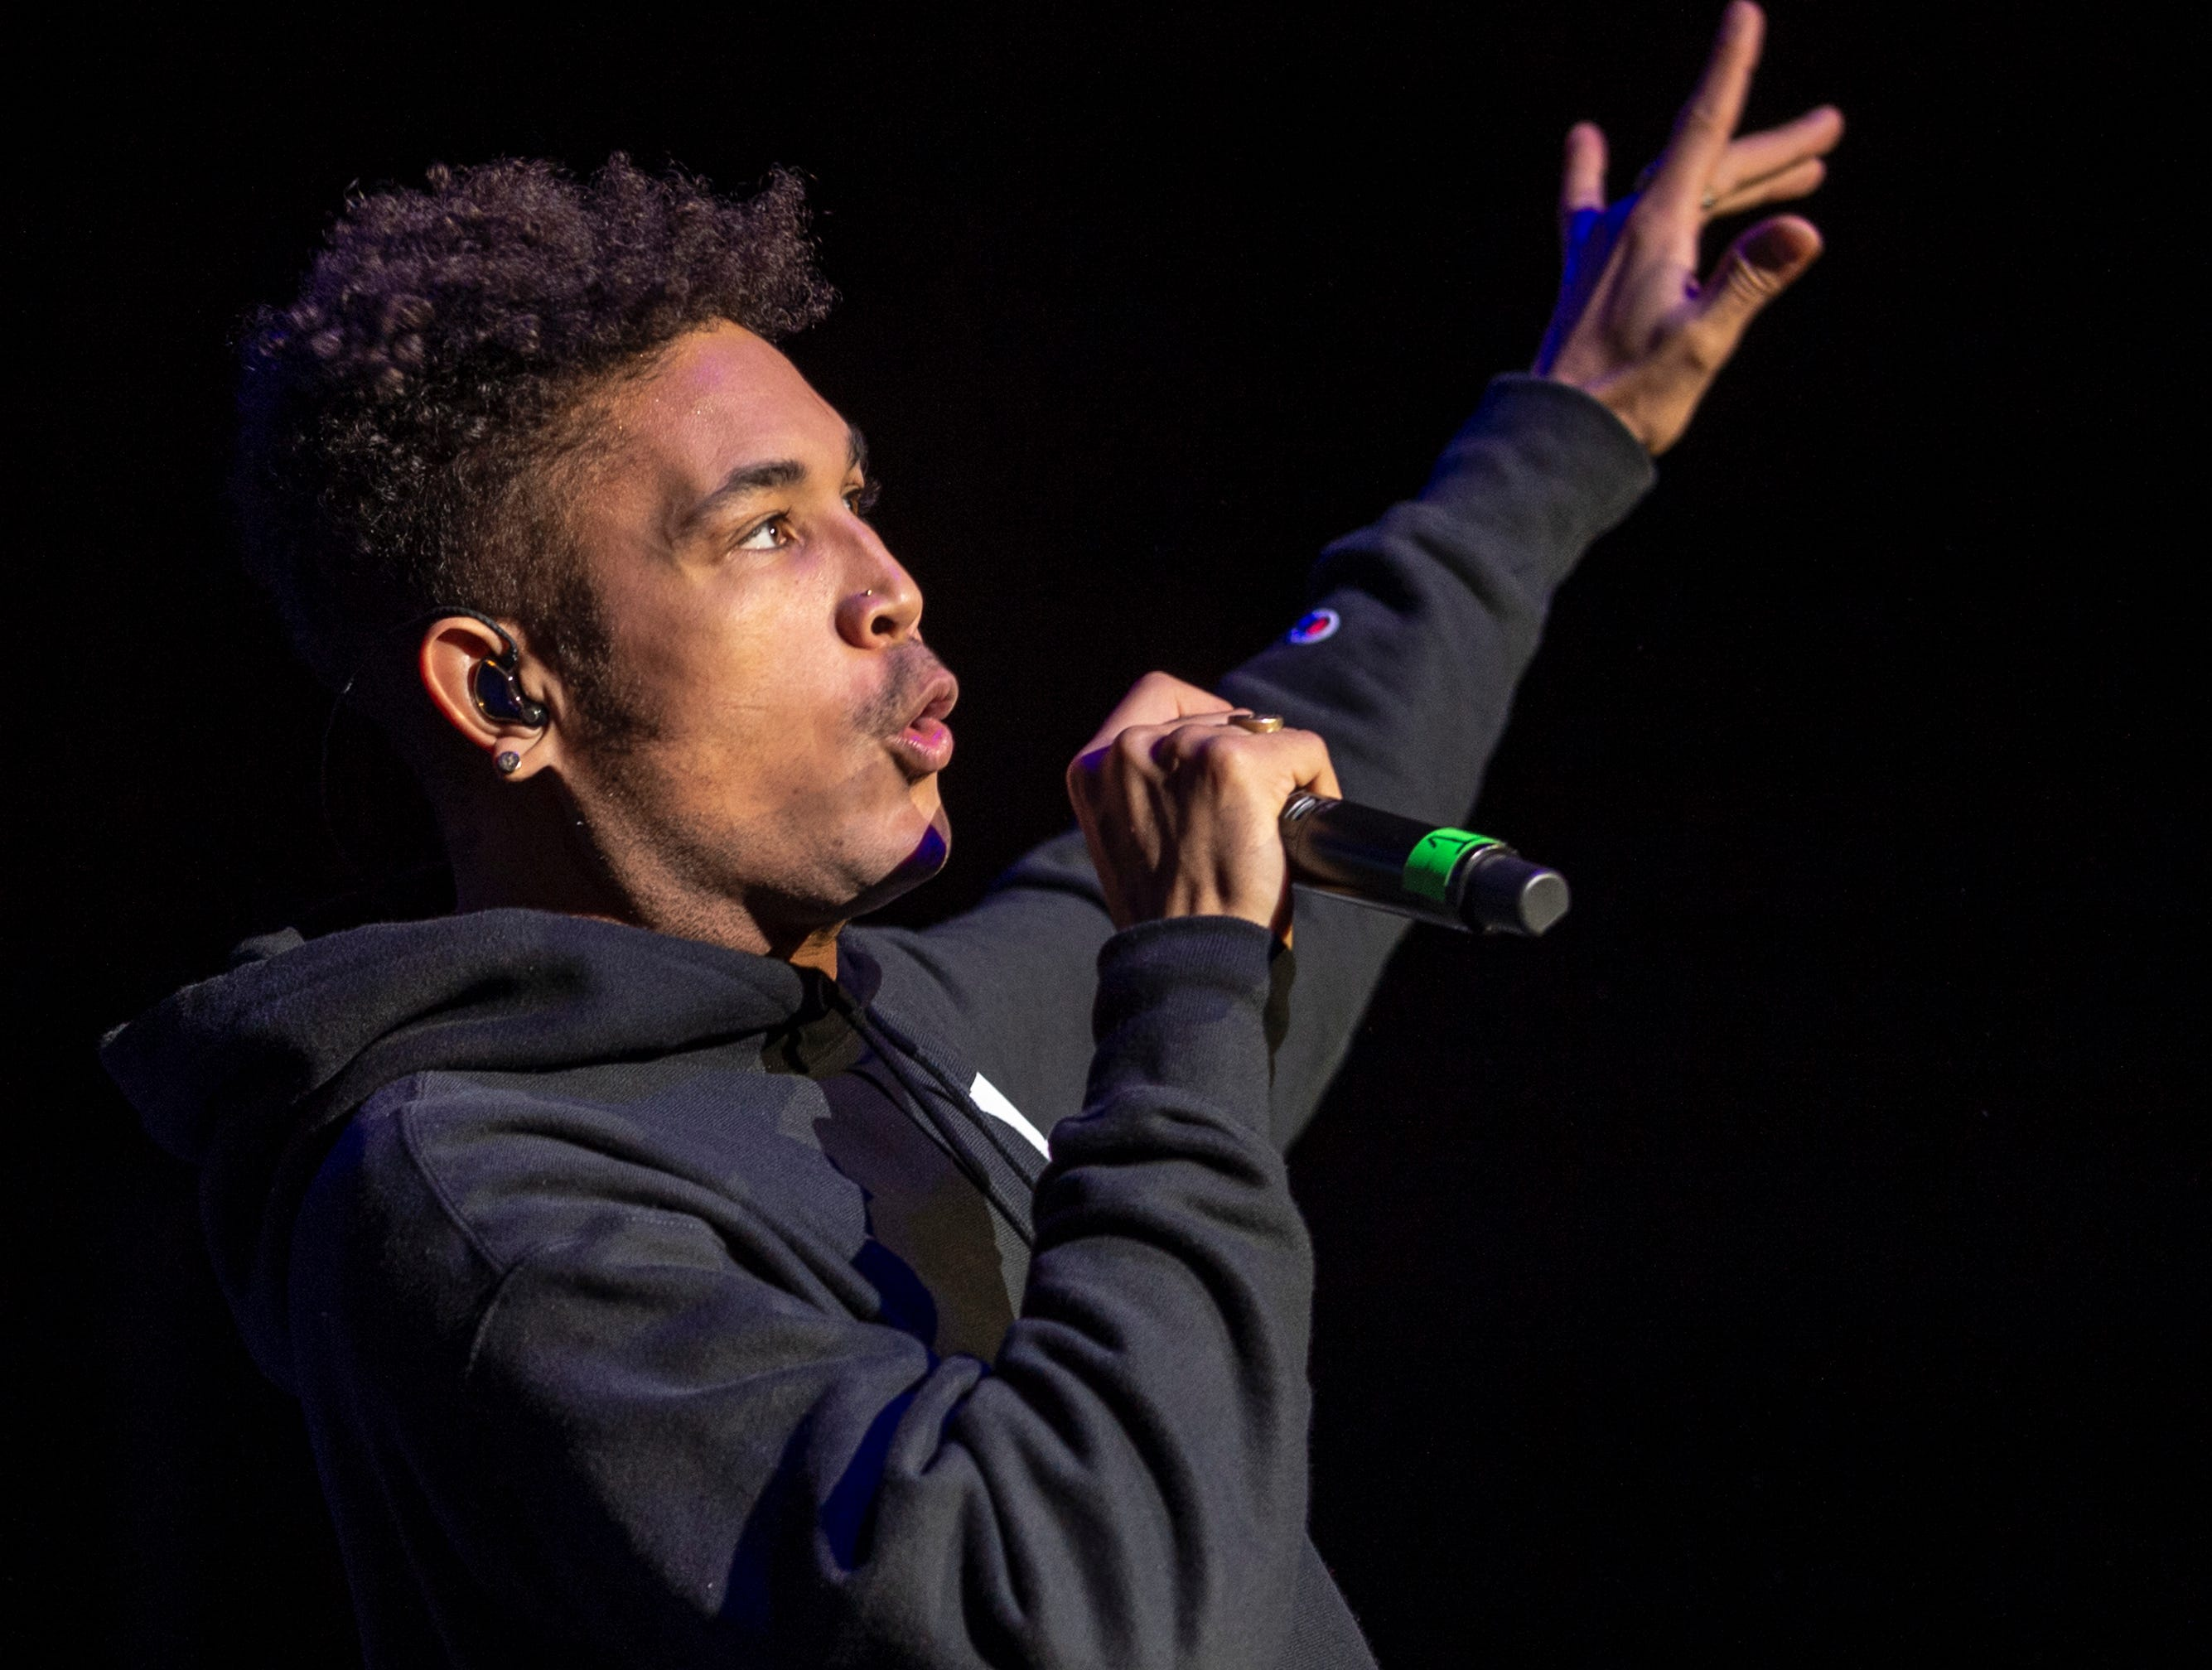 """Bryce Vine performs on stage. Radio stations Hot 96.3 and Radio Now 100.9 hosted the annual """"Santa Slam"""" concert, featuring American hip hop trio Migos, in the Indiana Farmers Coliseum at the Indiana State Fairgrounds in Indianapolis, Sunday, Dec. 9, 2018."""